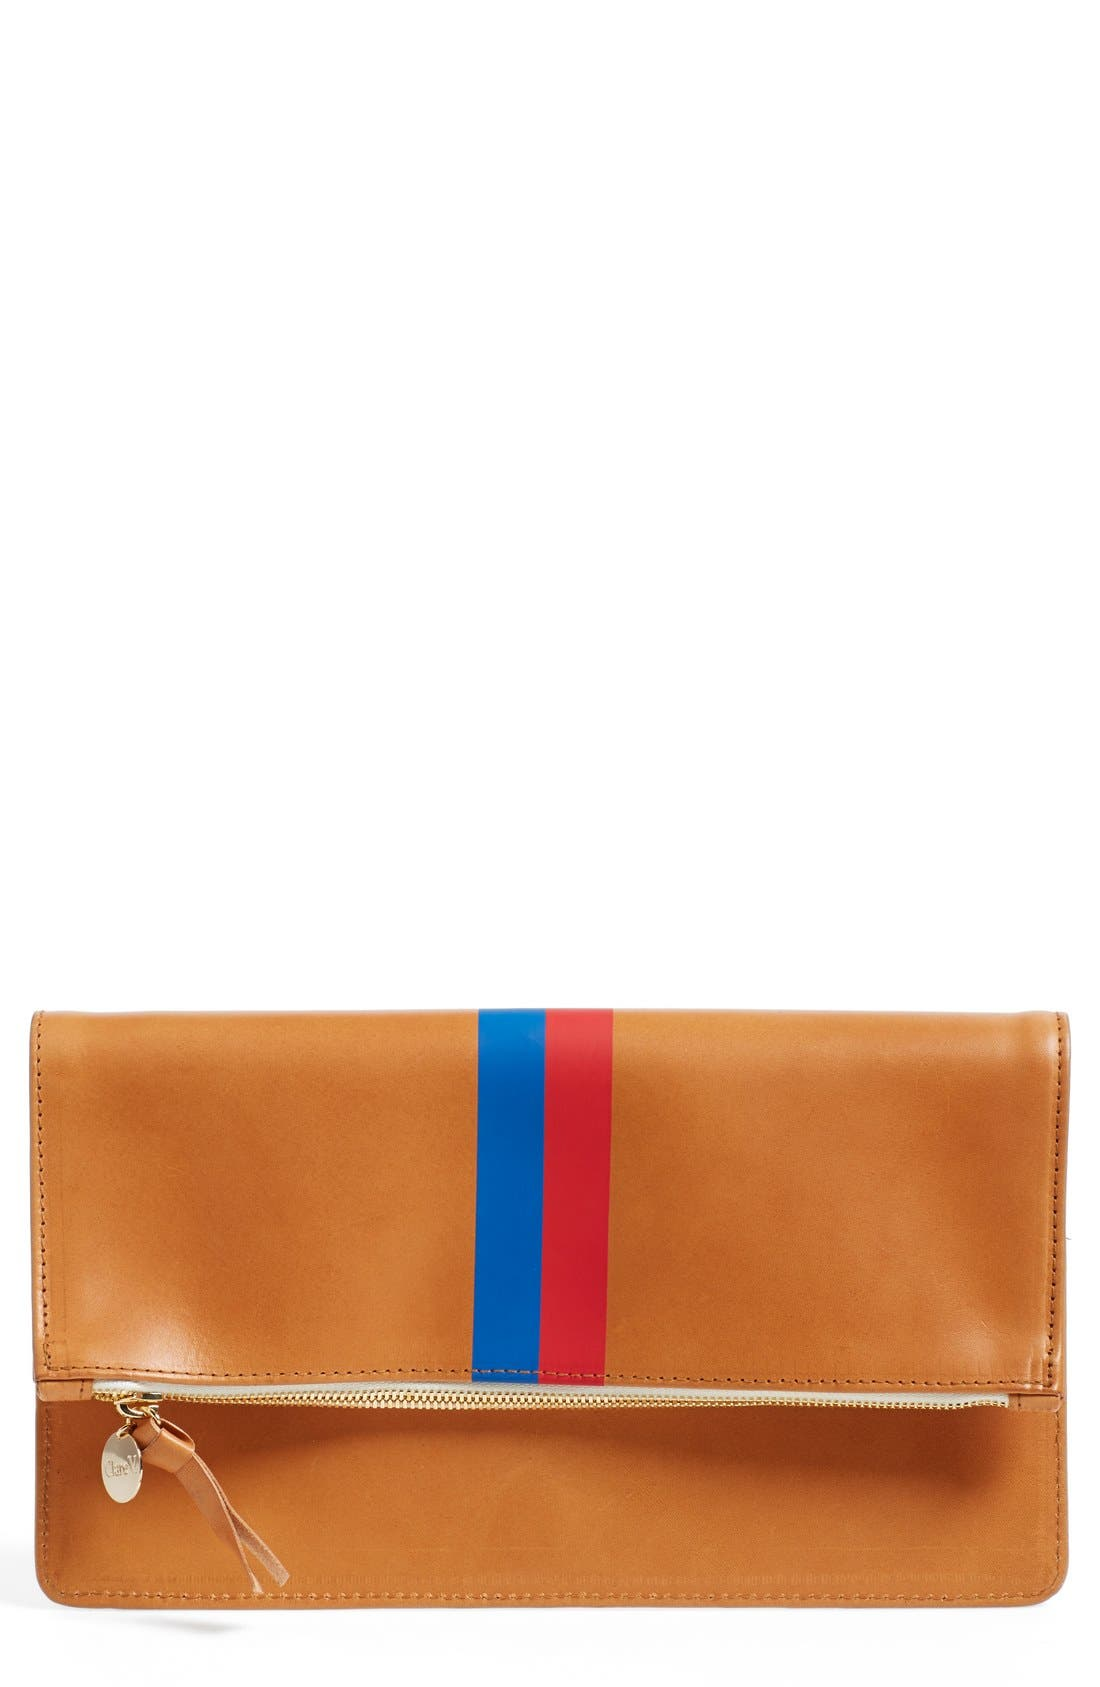 Alternate Image 1 Selected - Clare V. 'Margot' Stripe Leather Foldover Clutch